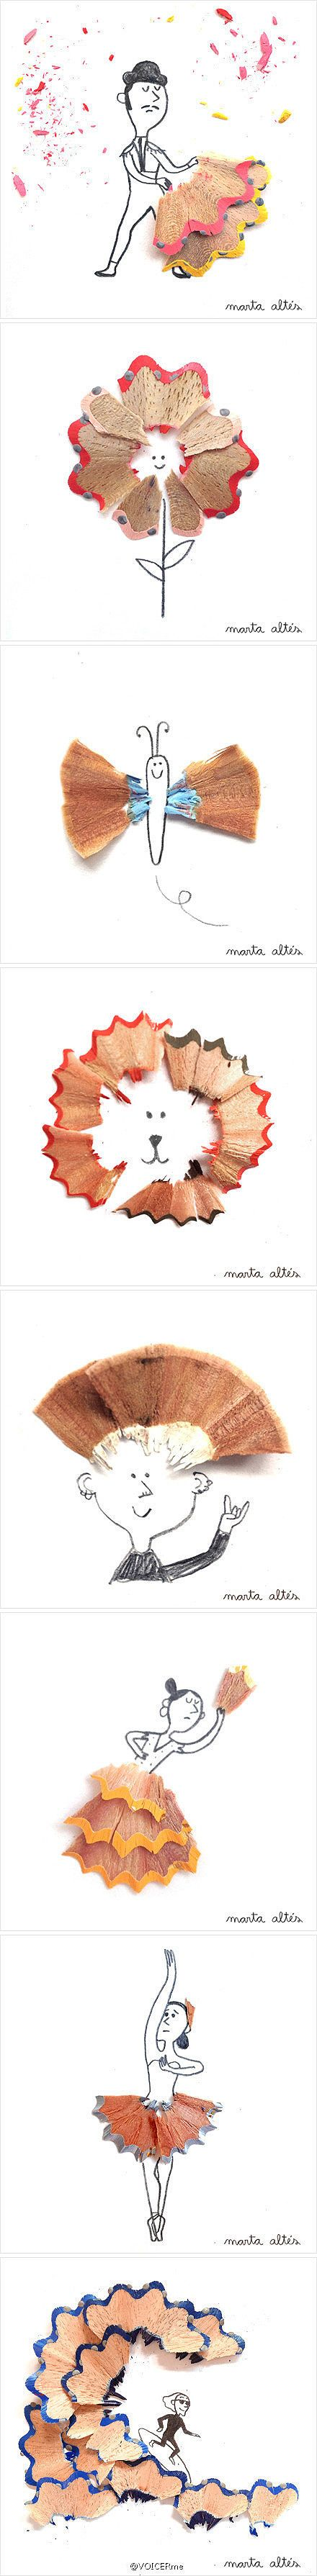 haha interesting way of incorporating pencil shavings with art!